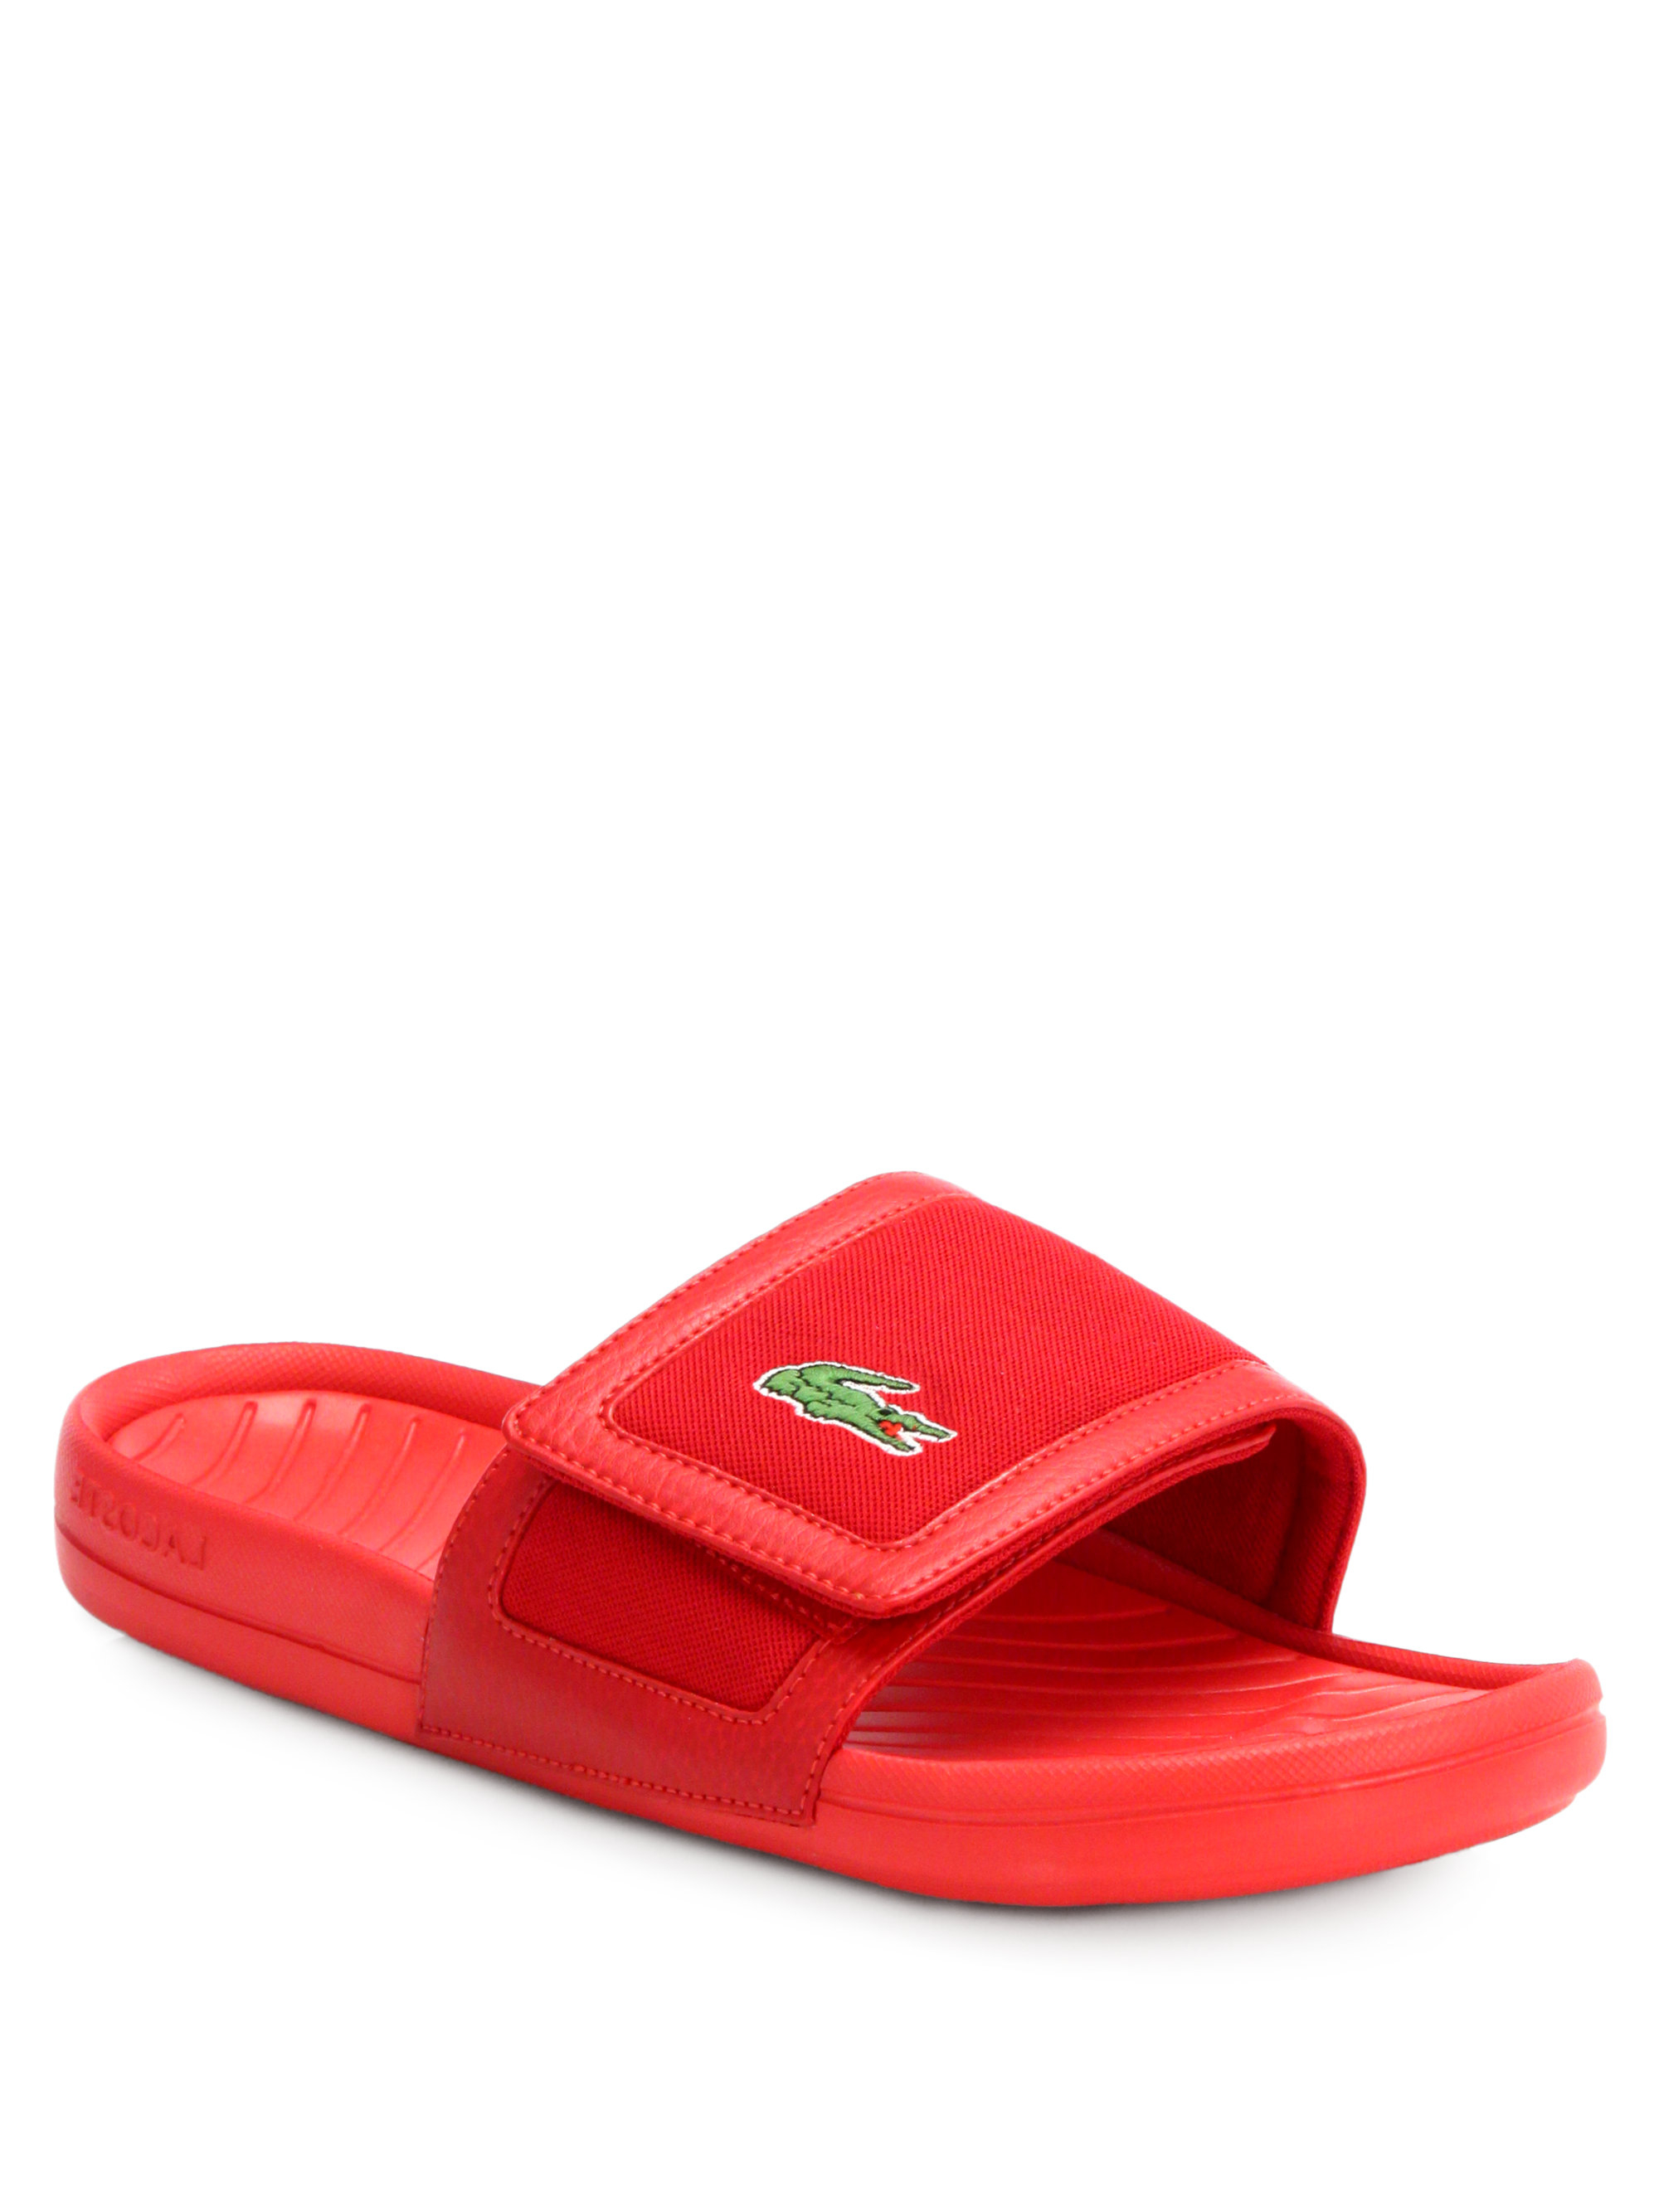 49e7a598ec0c17 Lyst - Lacoste Velcro Sandals in Red for Men